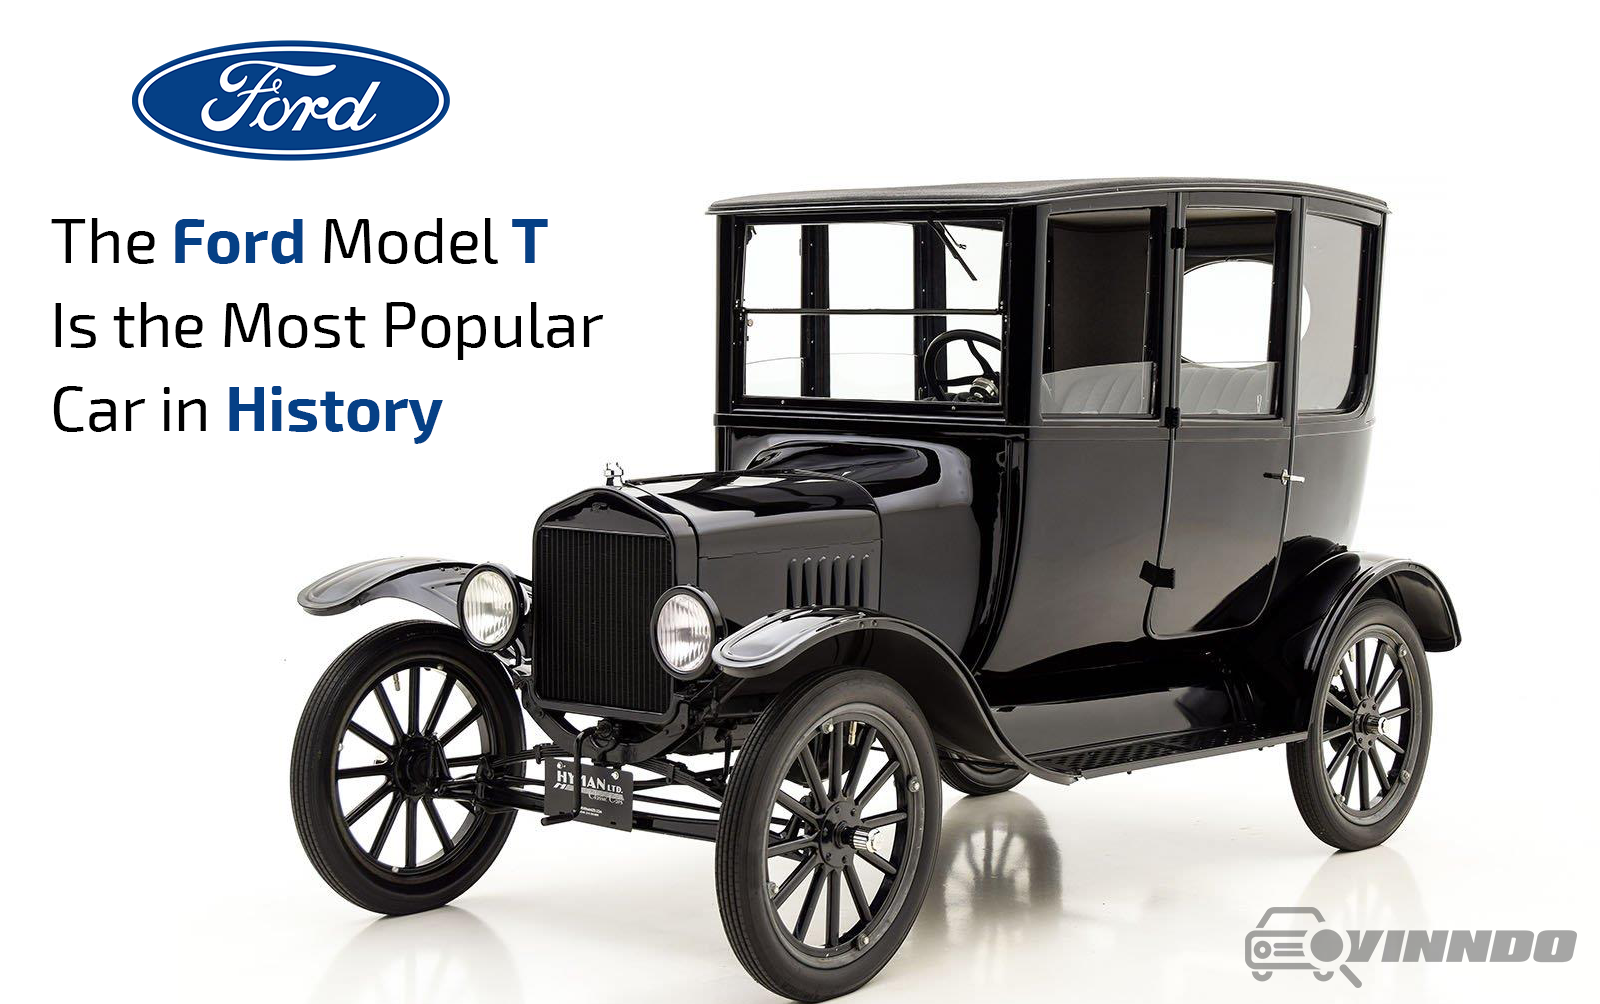 The Ford Model T Is The Most Popular Car In History Vinndo App